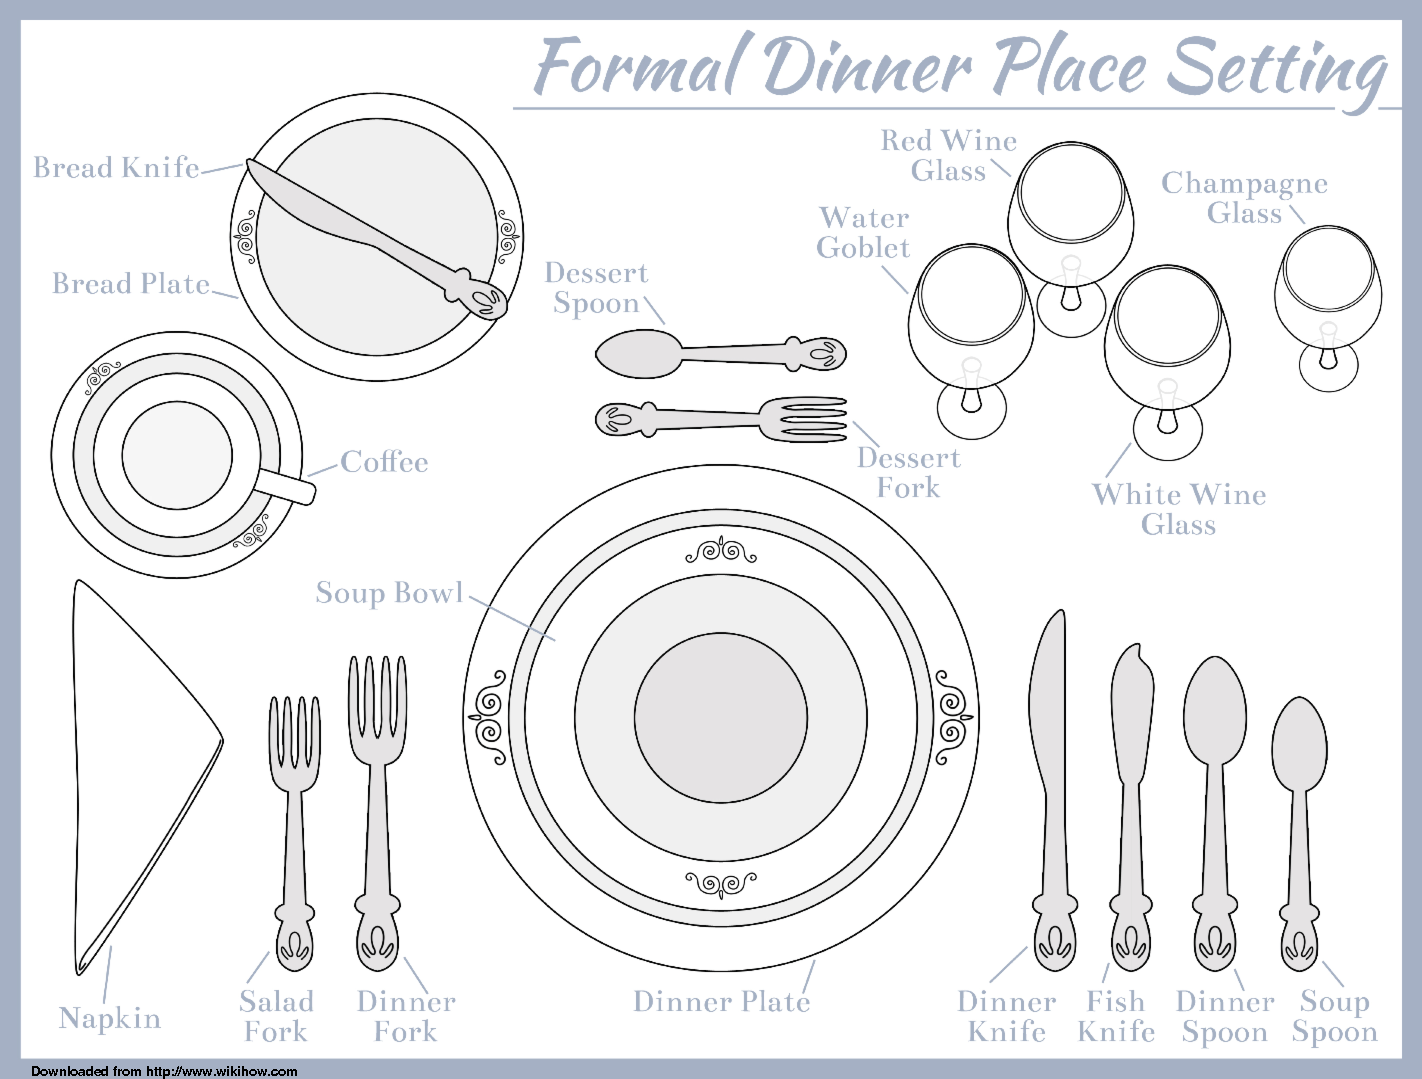 Place Setting Template for Sevencourse meal | Food | Course meal, Place setting template